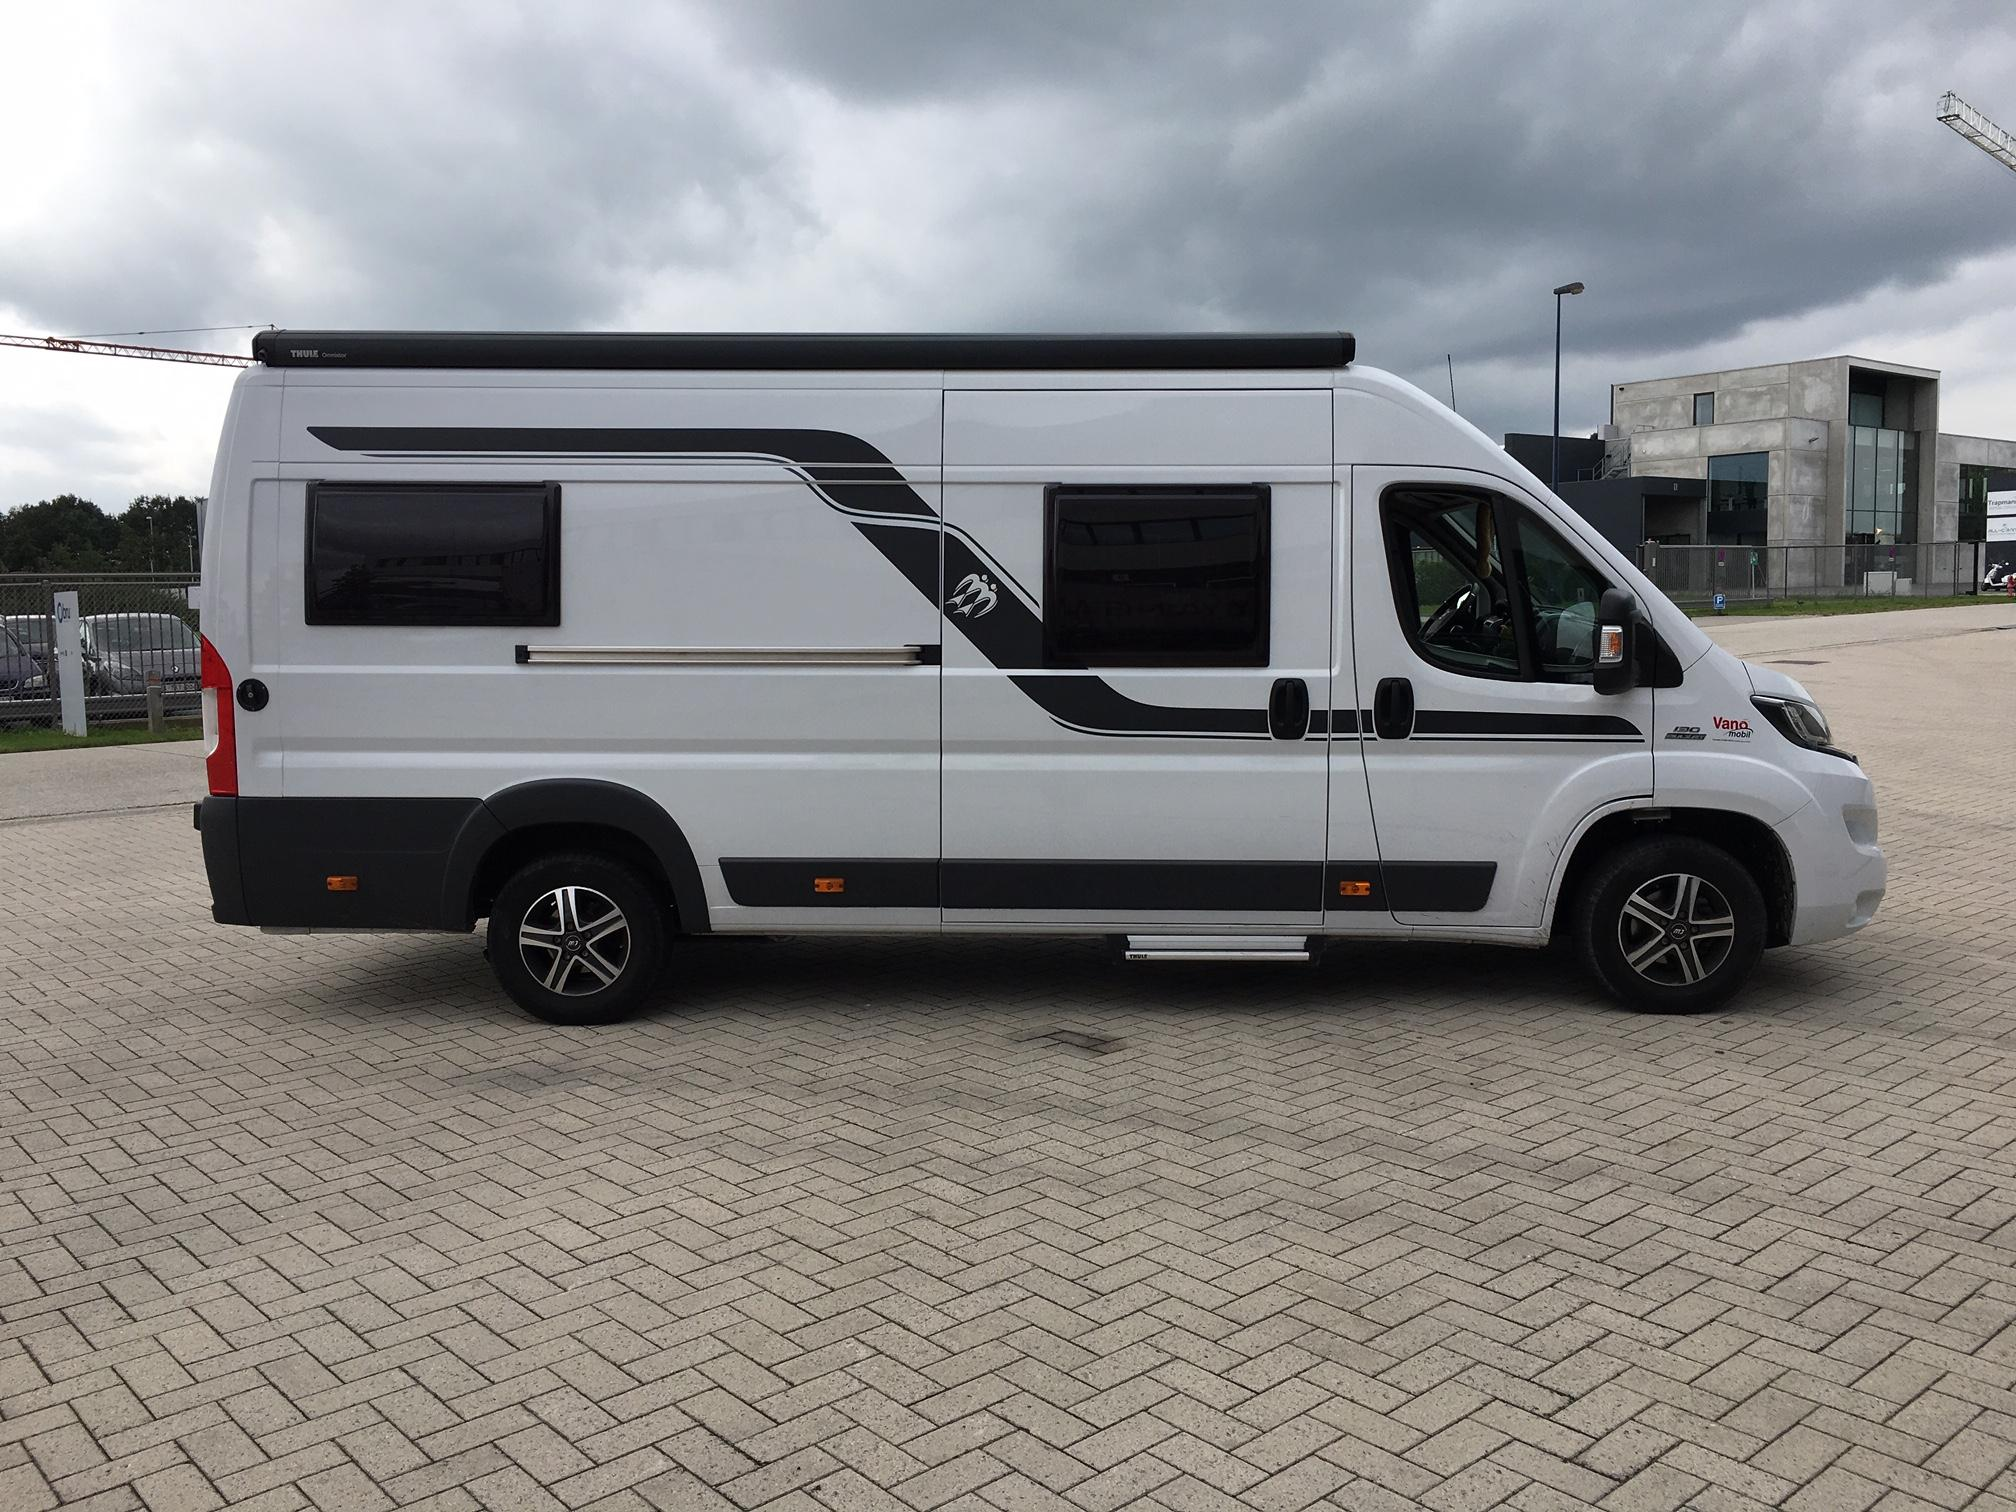 volautomatische luchtvering Knaus campervan | Trapmann Air Suspension